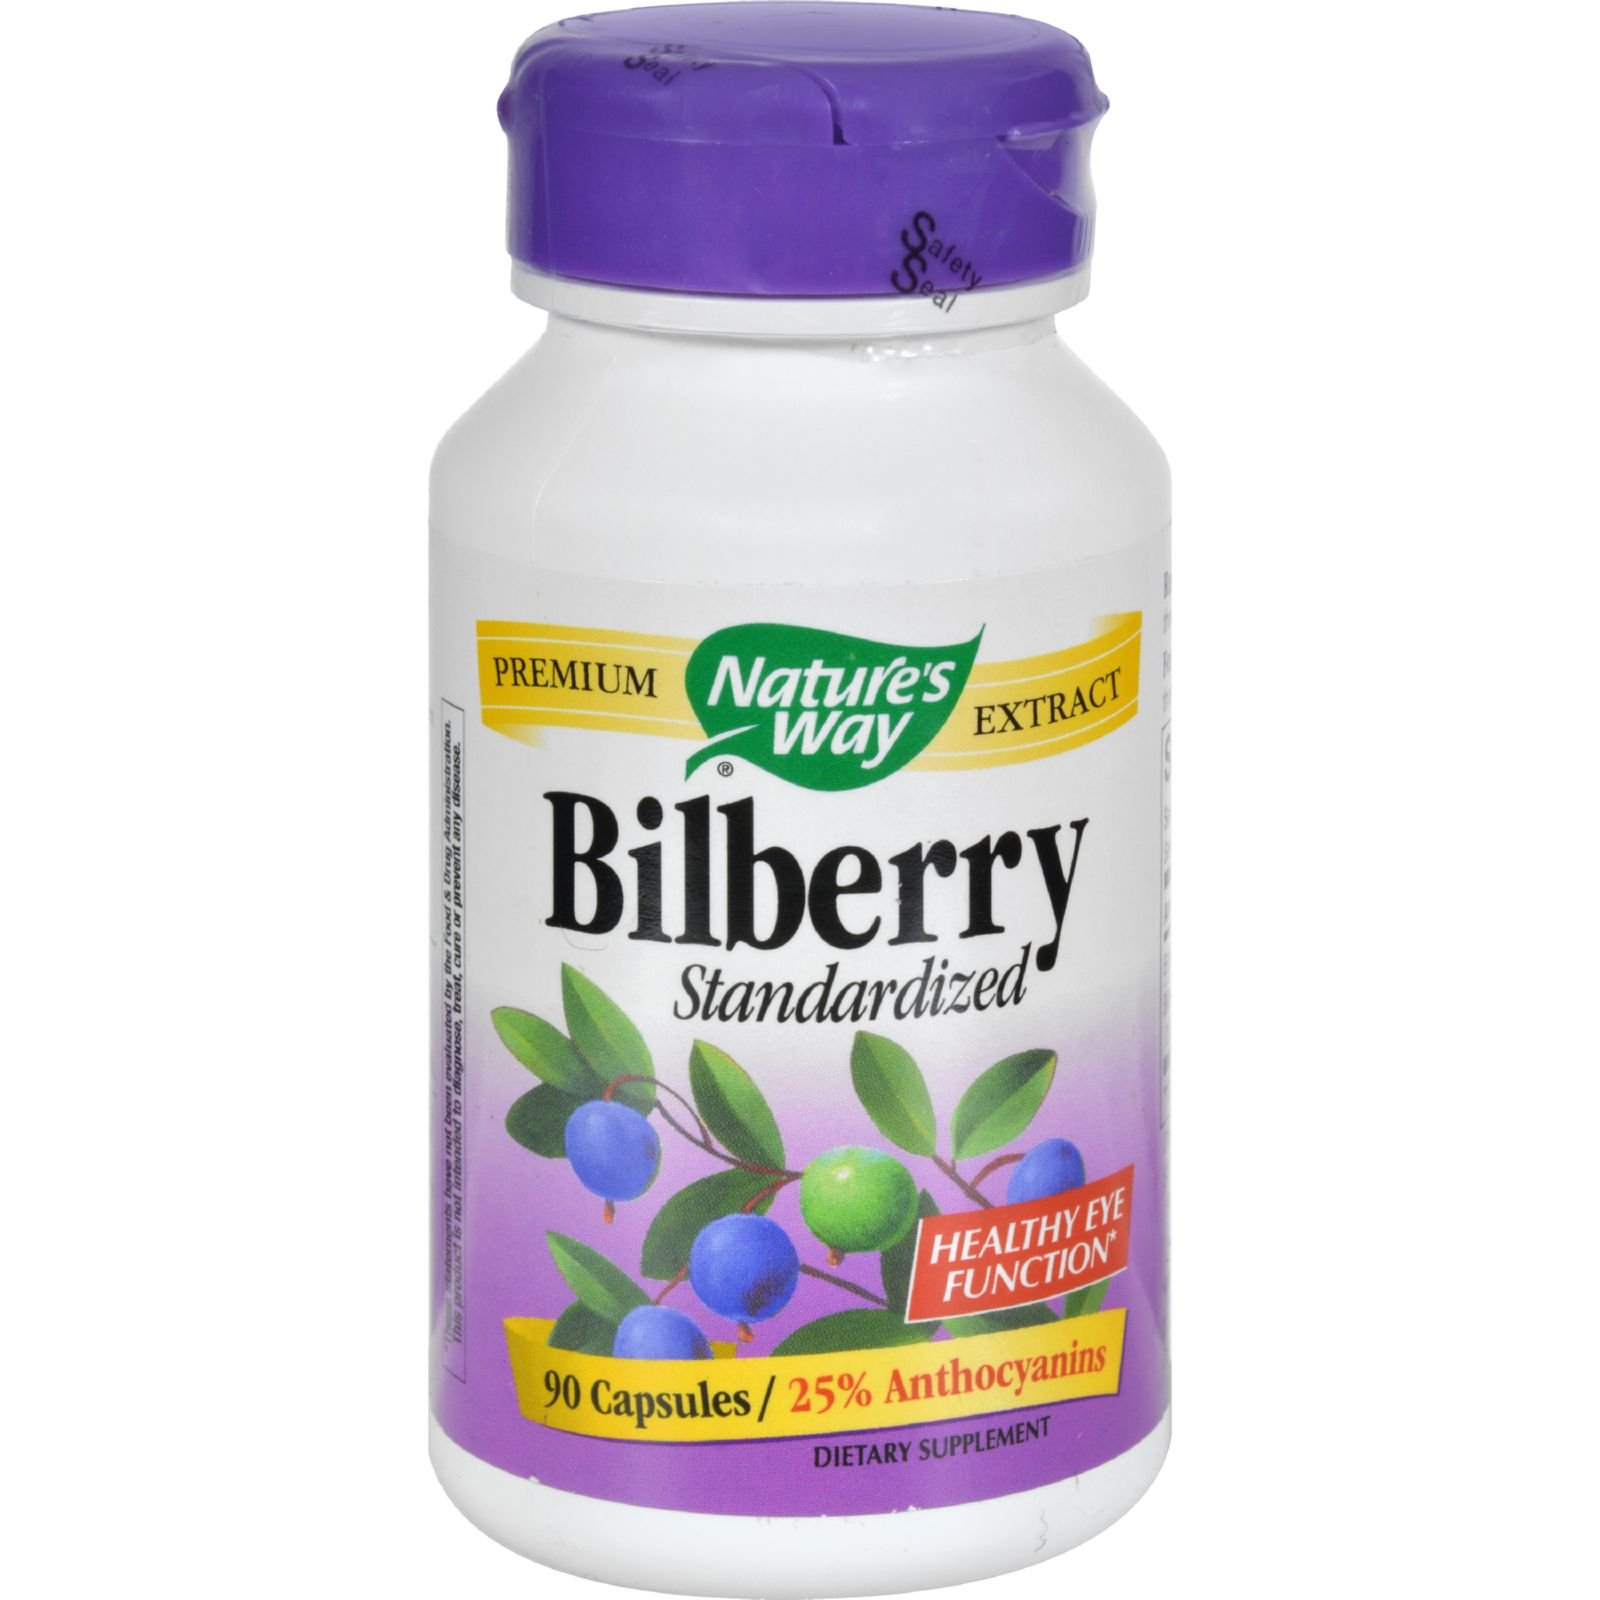 2Pack! Nature's Way Bilberry Standardized - 80 mg - 90 Capsules